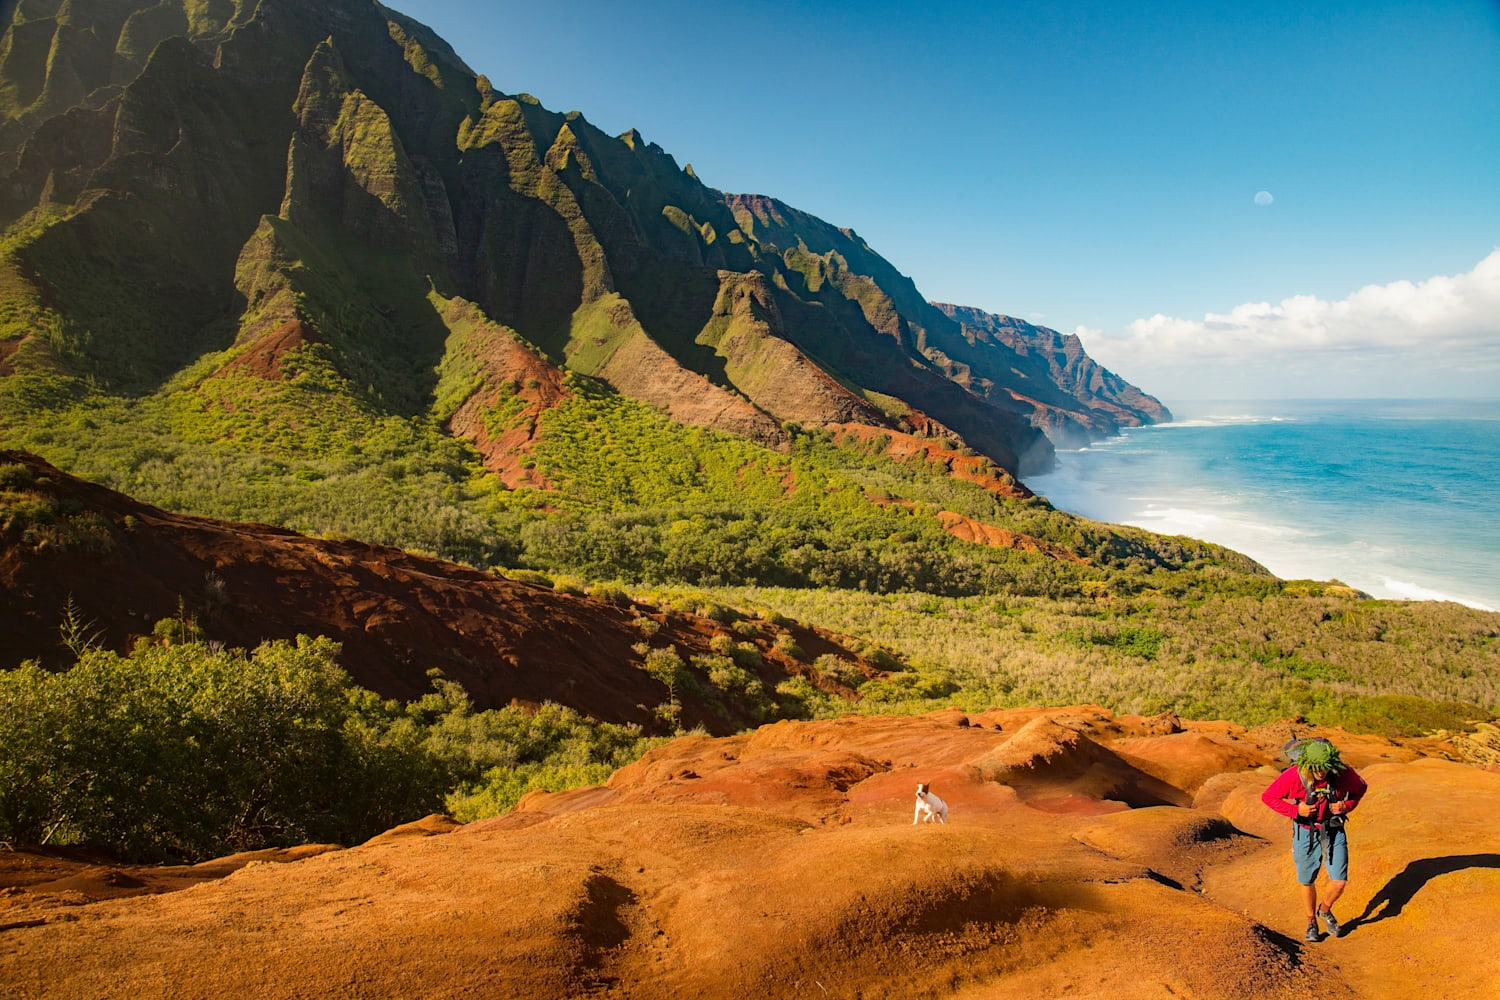 The 10 best hikes in Hawaii